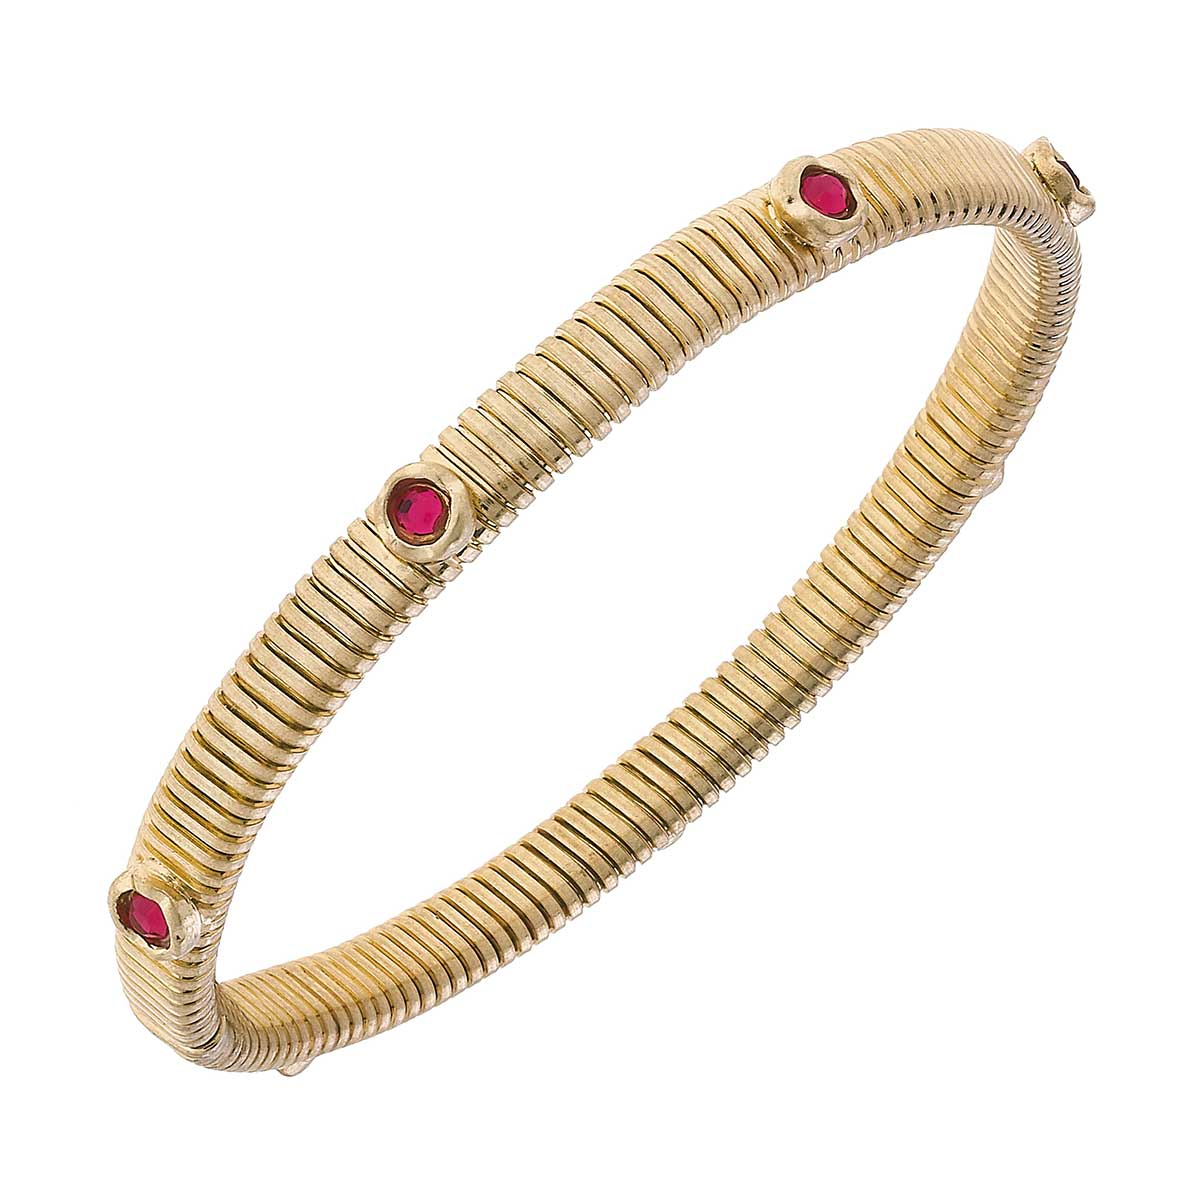 Florence Skinny Watch Band Bangle in Fuchsia